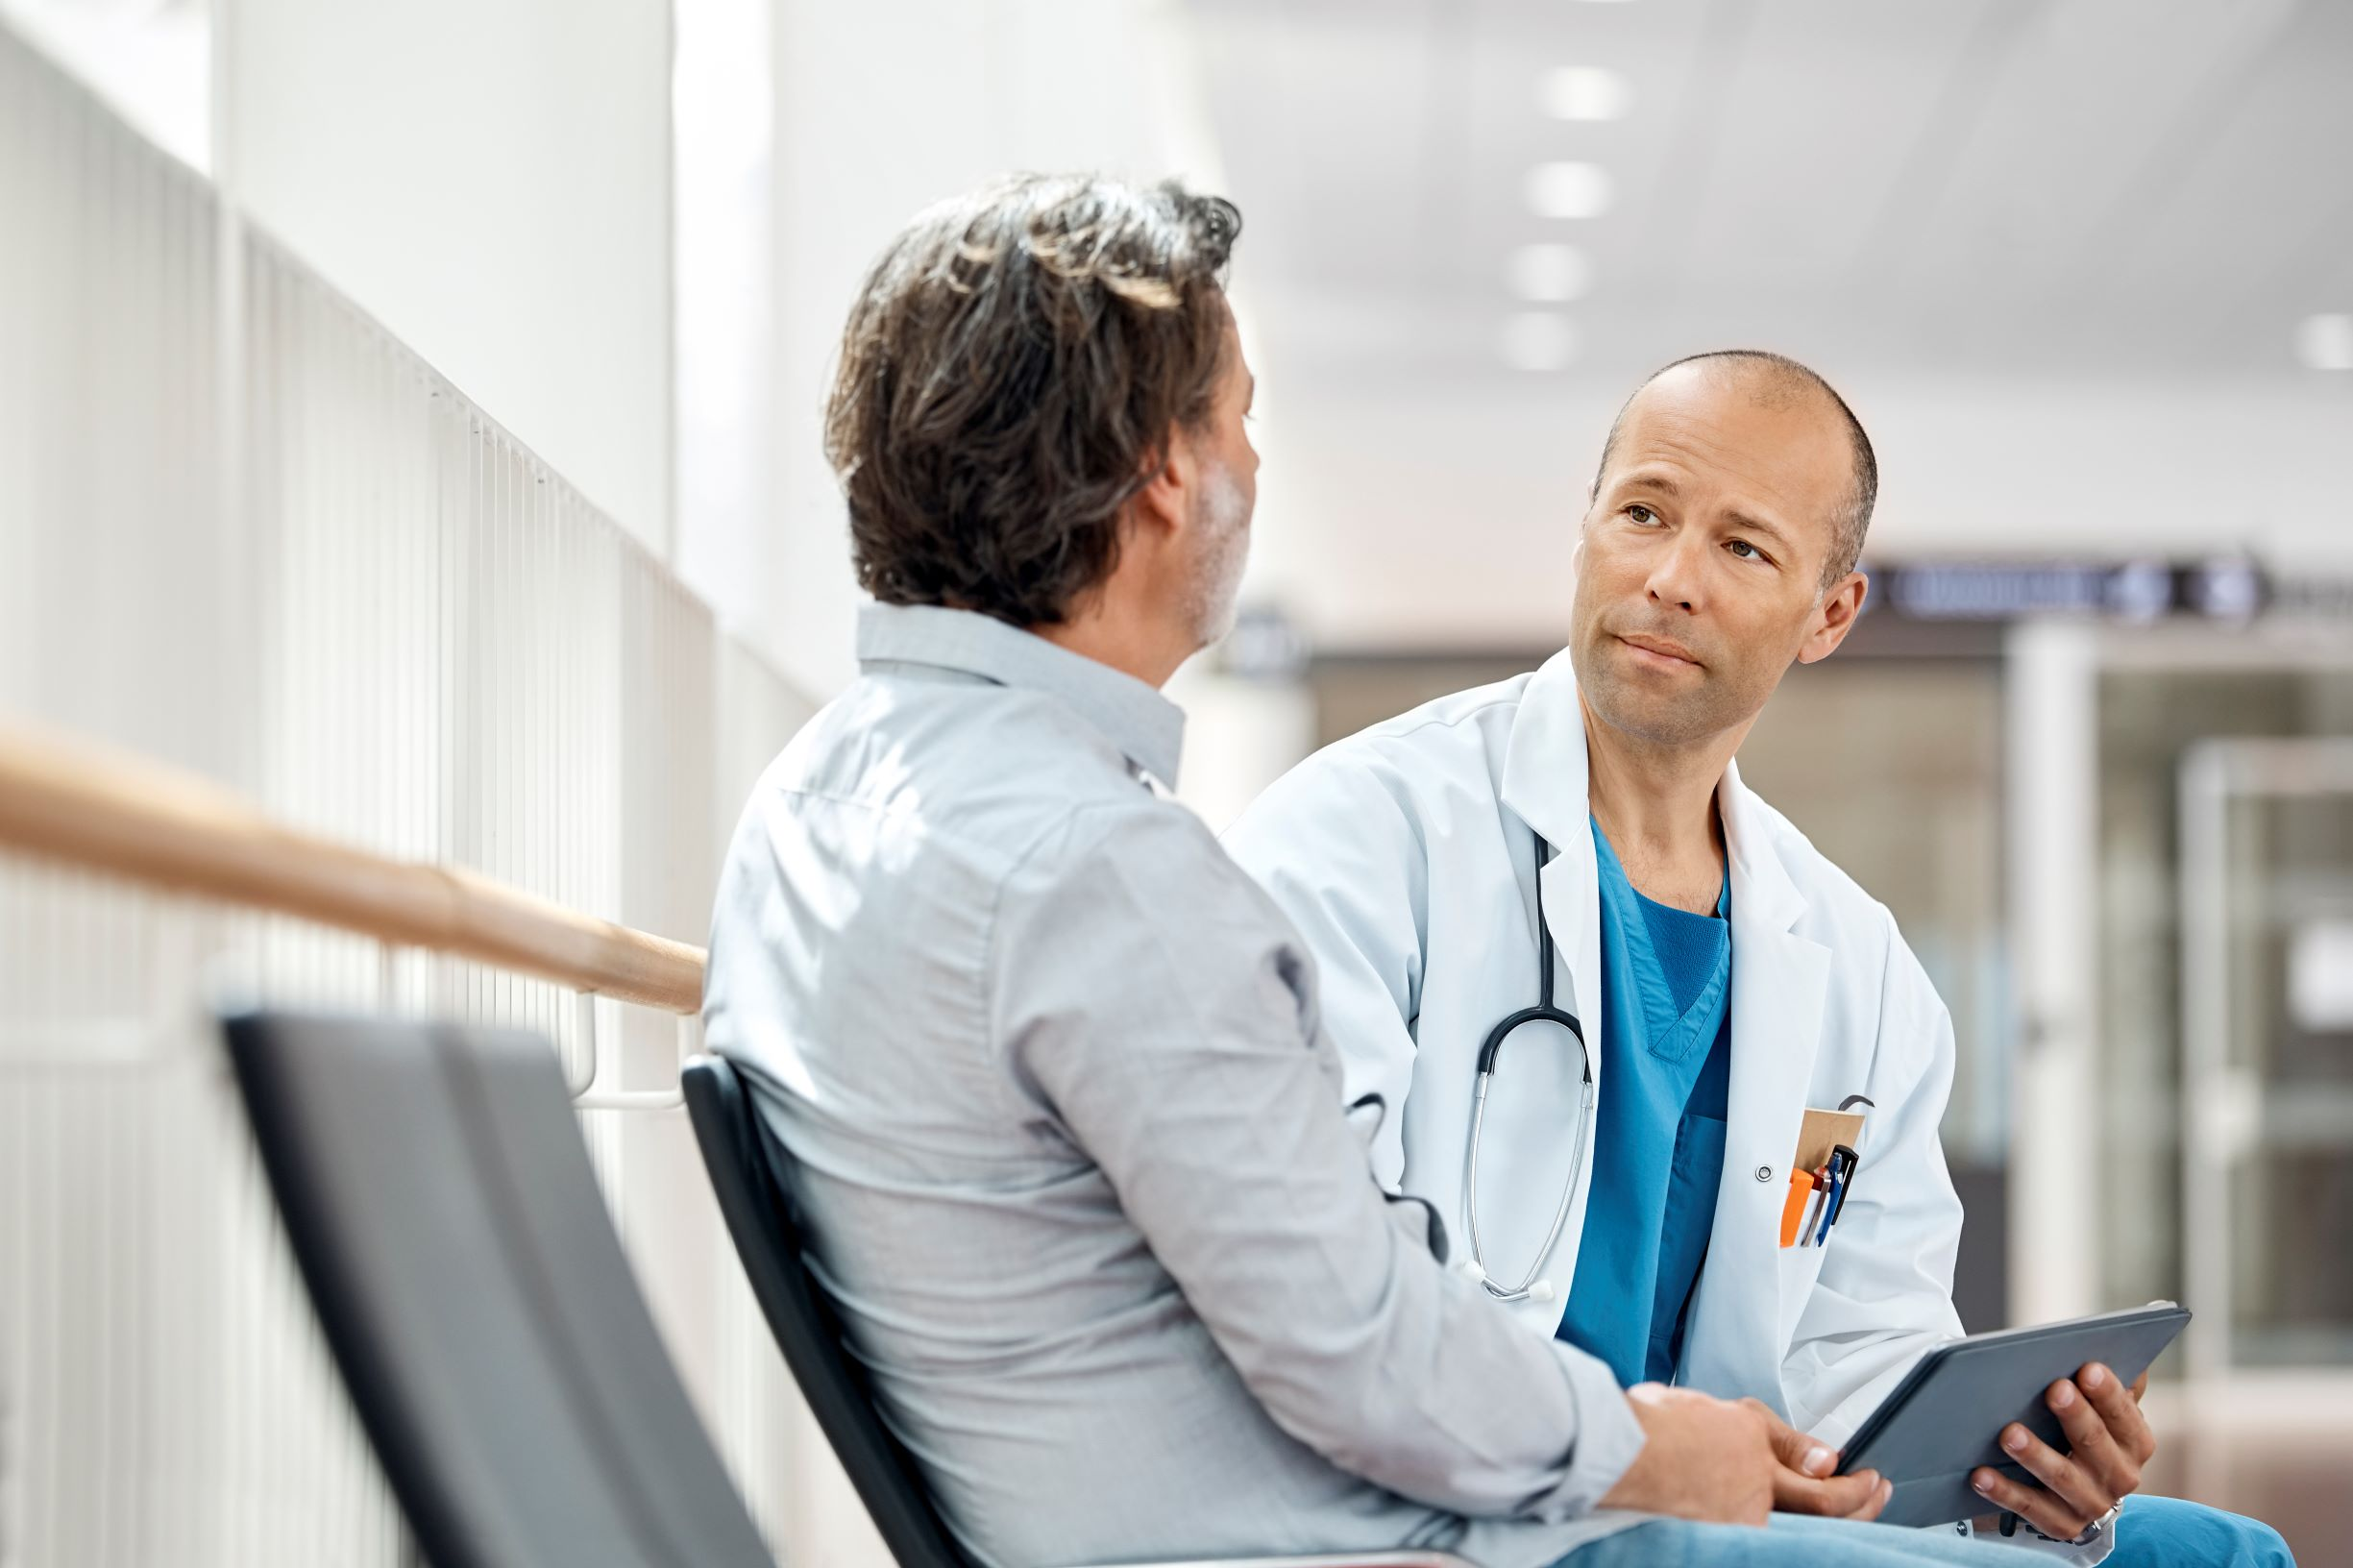 Doctor speaking with older male